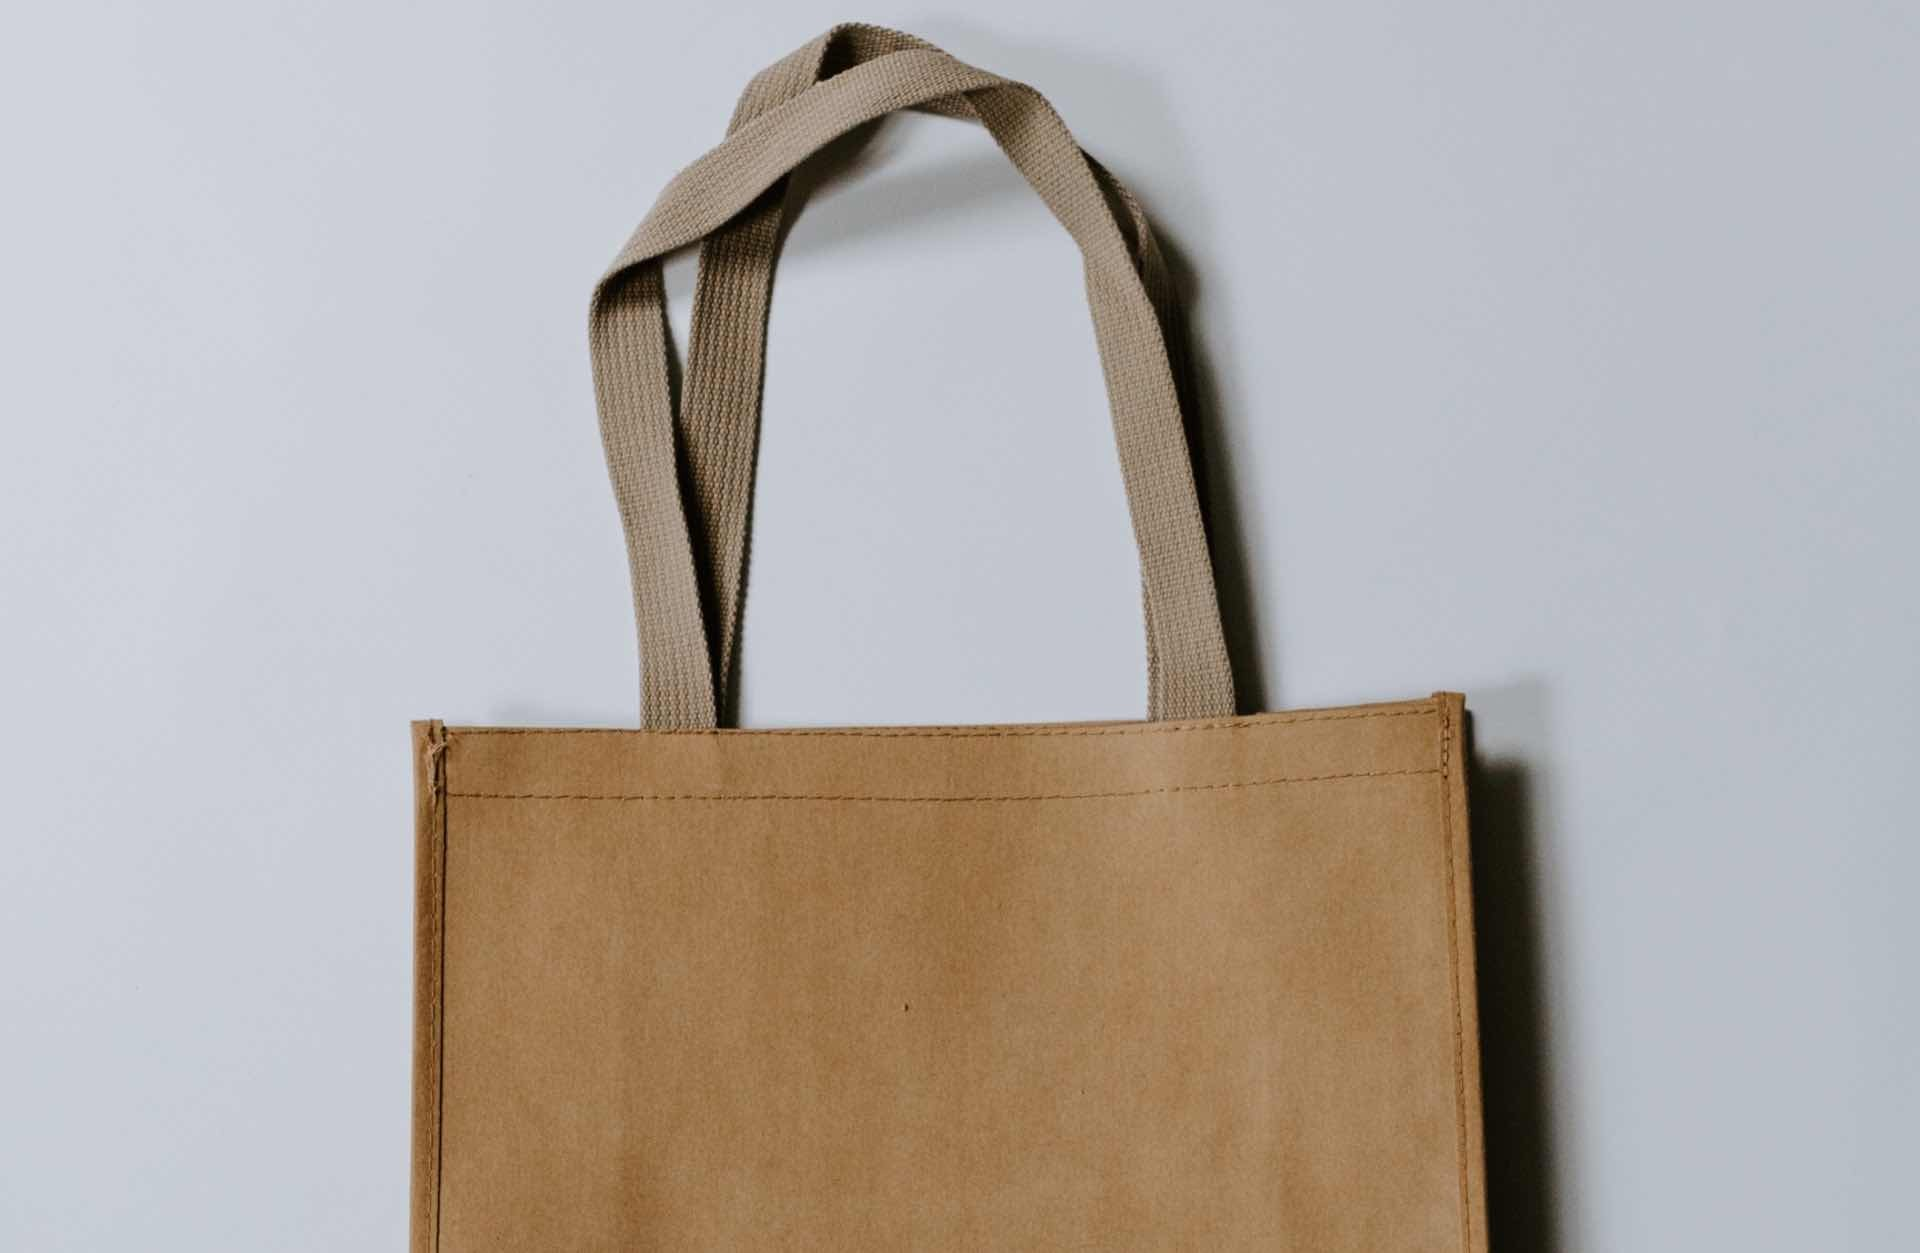 reusable-bags-to-replace-disposable-ones-guide-hero-kelly-sikkema